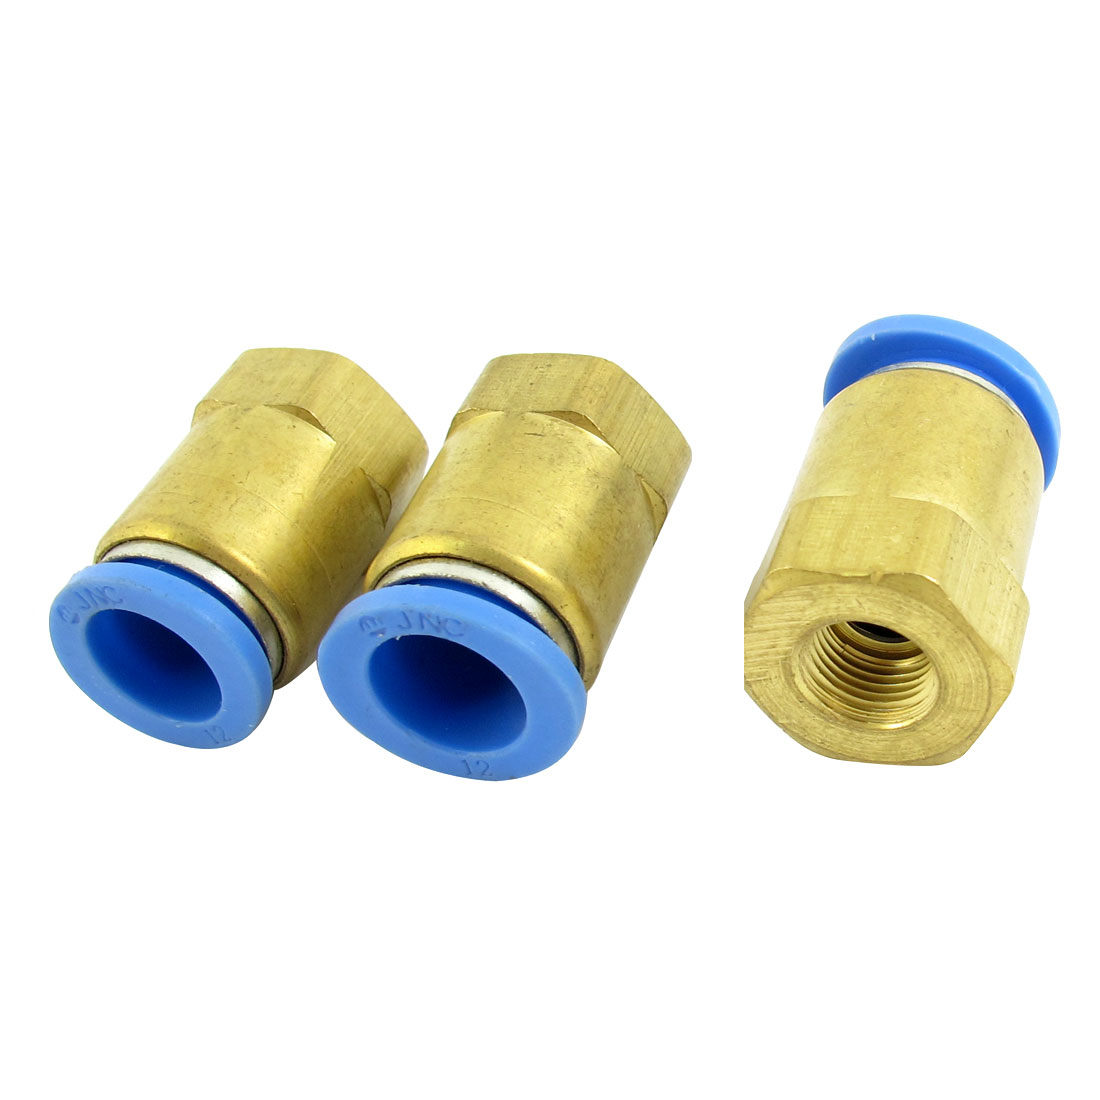 3pcs 8mm 1/8PT Female Threaded to 12mm Tube Dia Straight Pneumatic Air Quick Release Fitting Coupler Connector Adapter